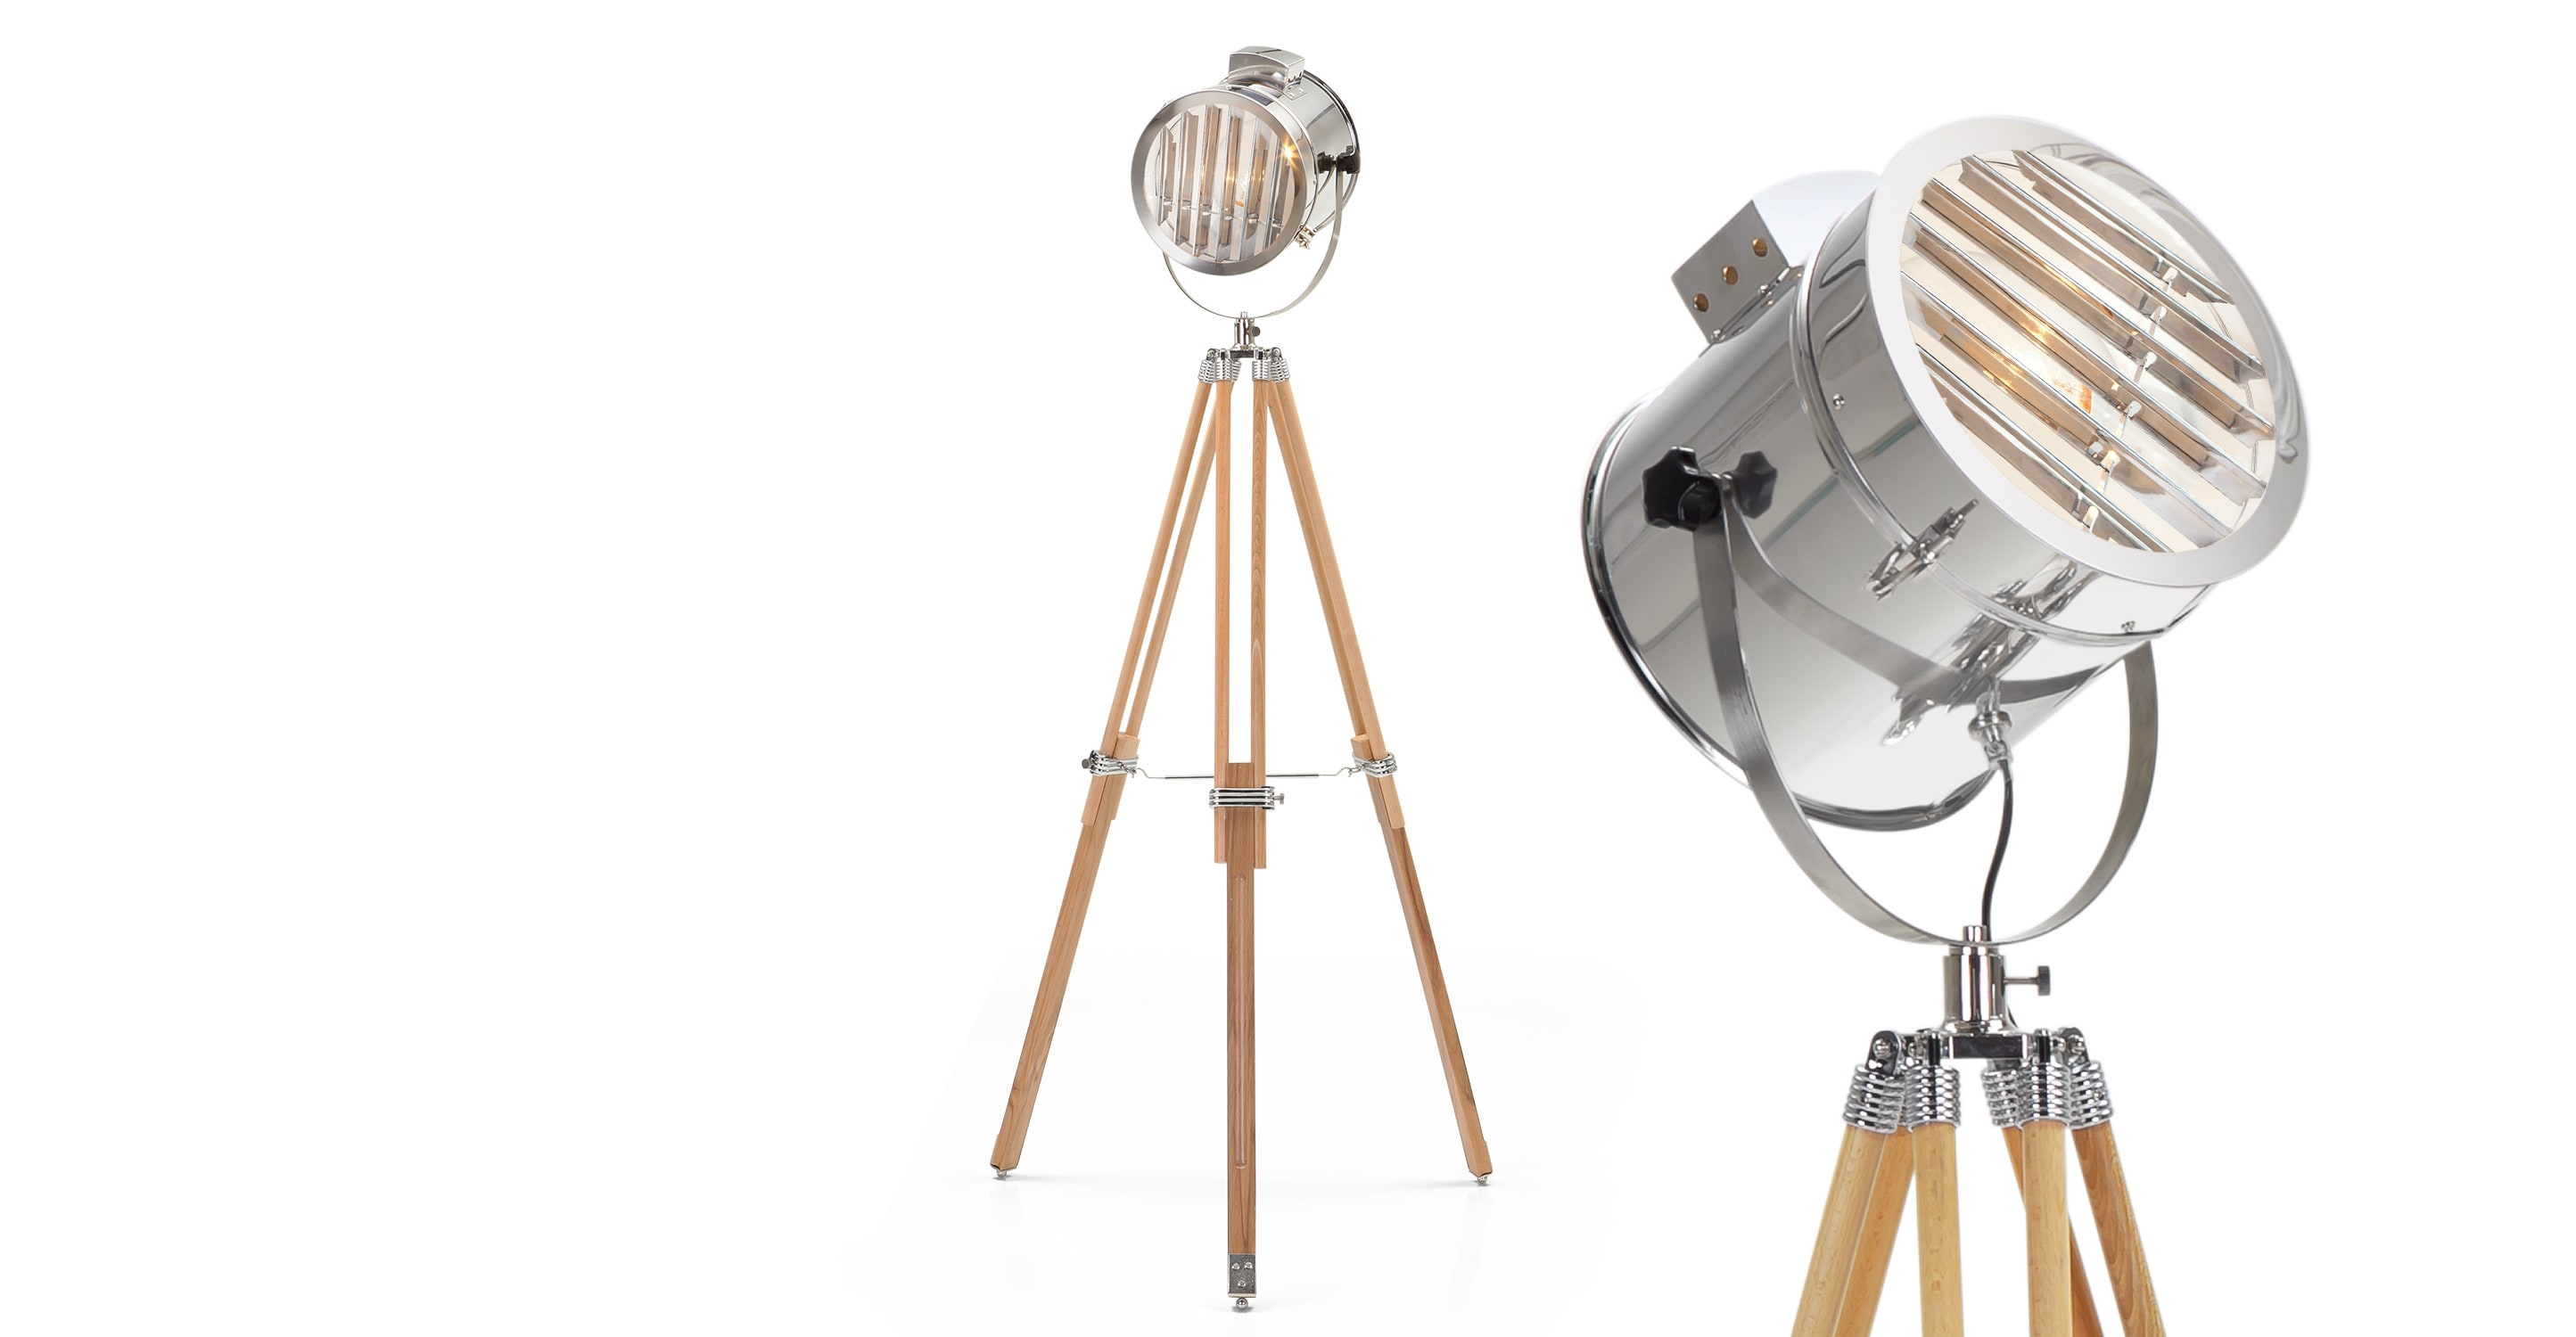 Tripod Lamp | Wooden Tripod | Arc Lamp Crate and Barrel